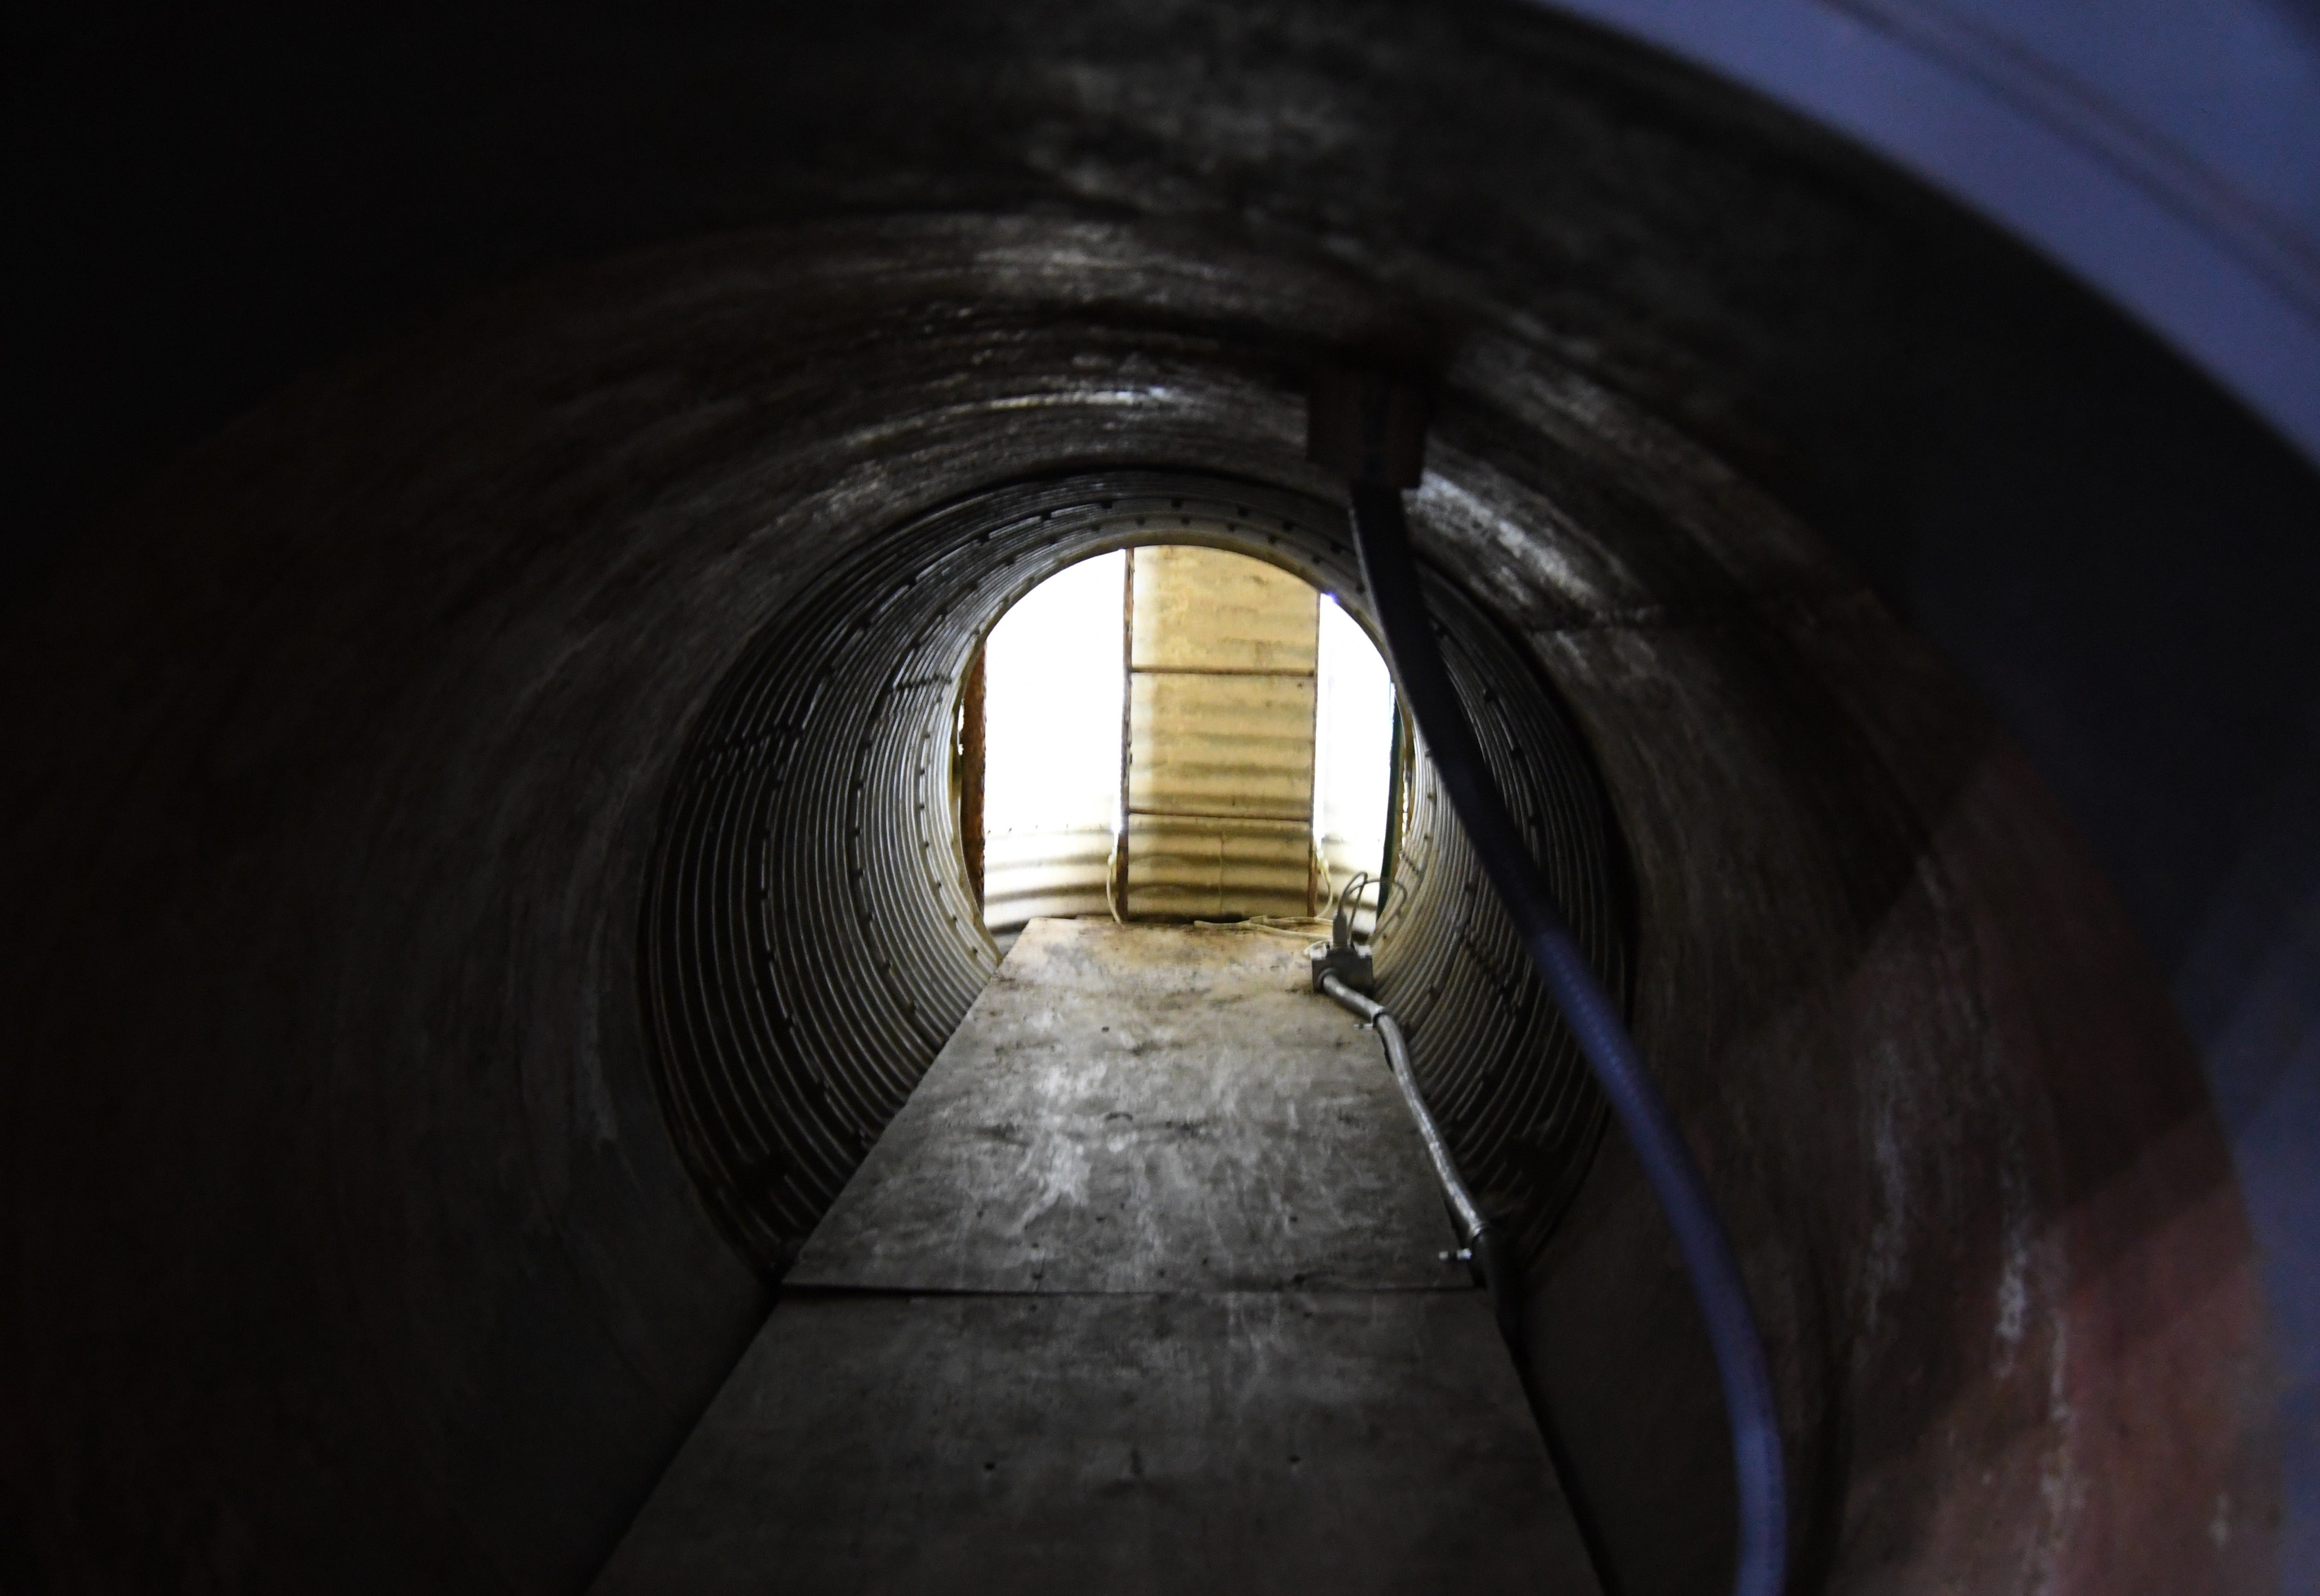 This 10-foot tunnel leads to a 50-foot ladder that more adventurous souls may use to exit the Titan Ranch underground facility near Vilonia.